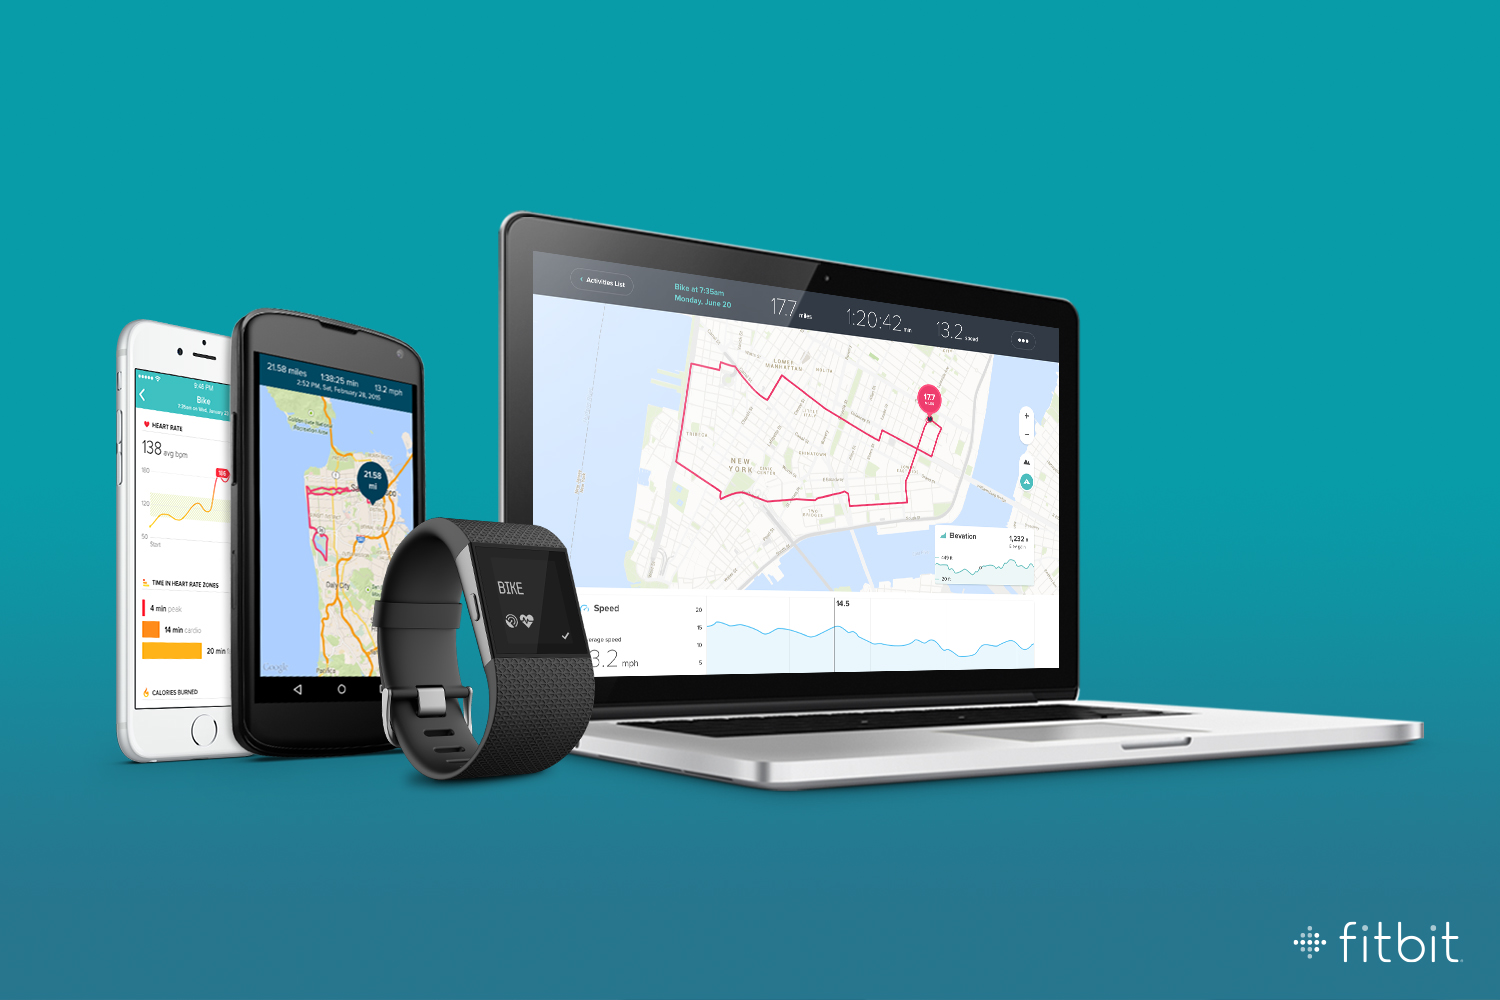 Fitbit Adds Cycling and Multi-Device Support to the Surge